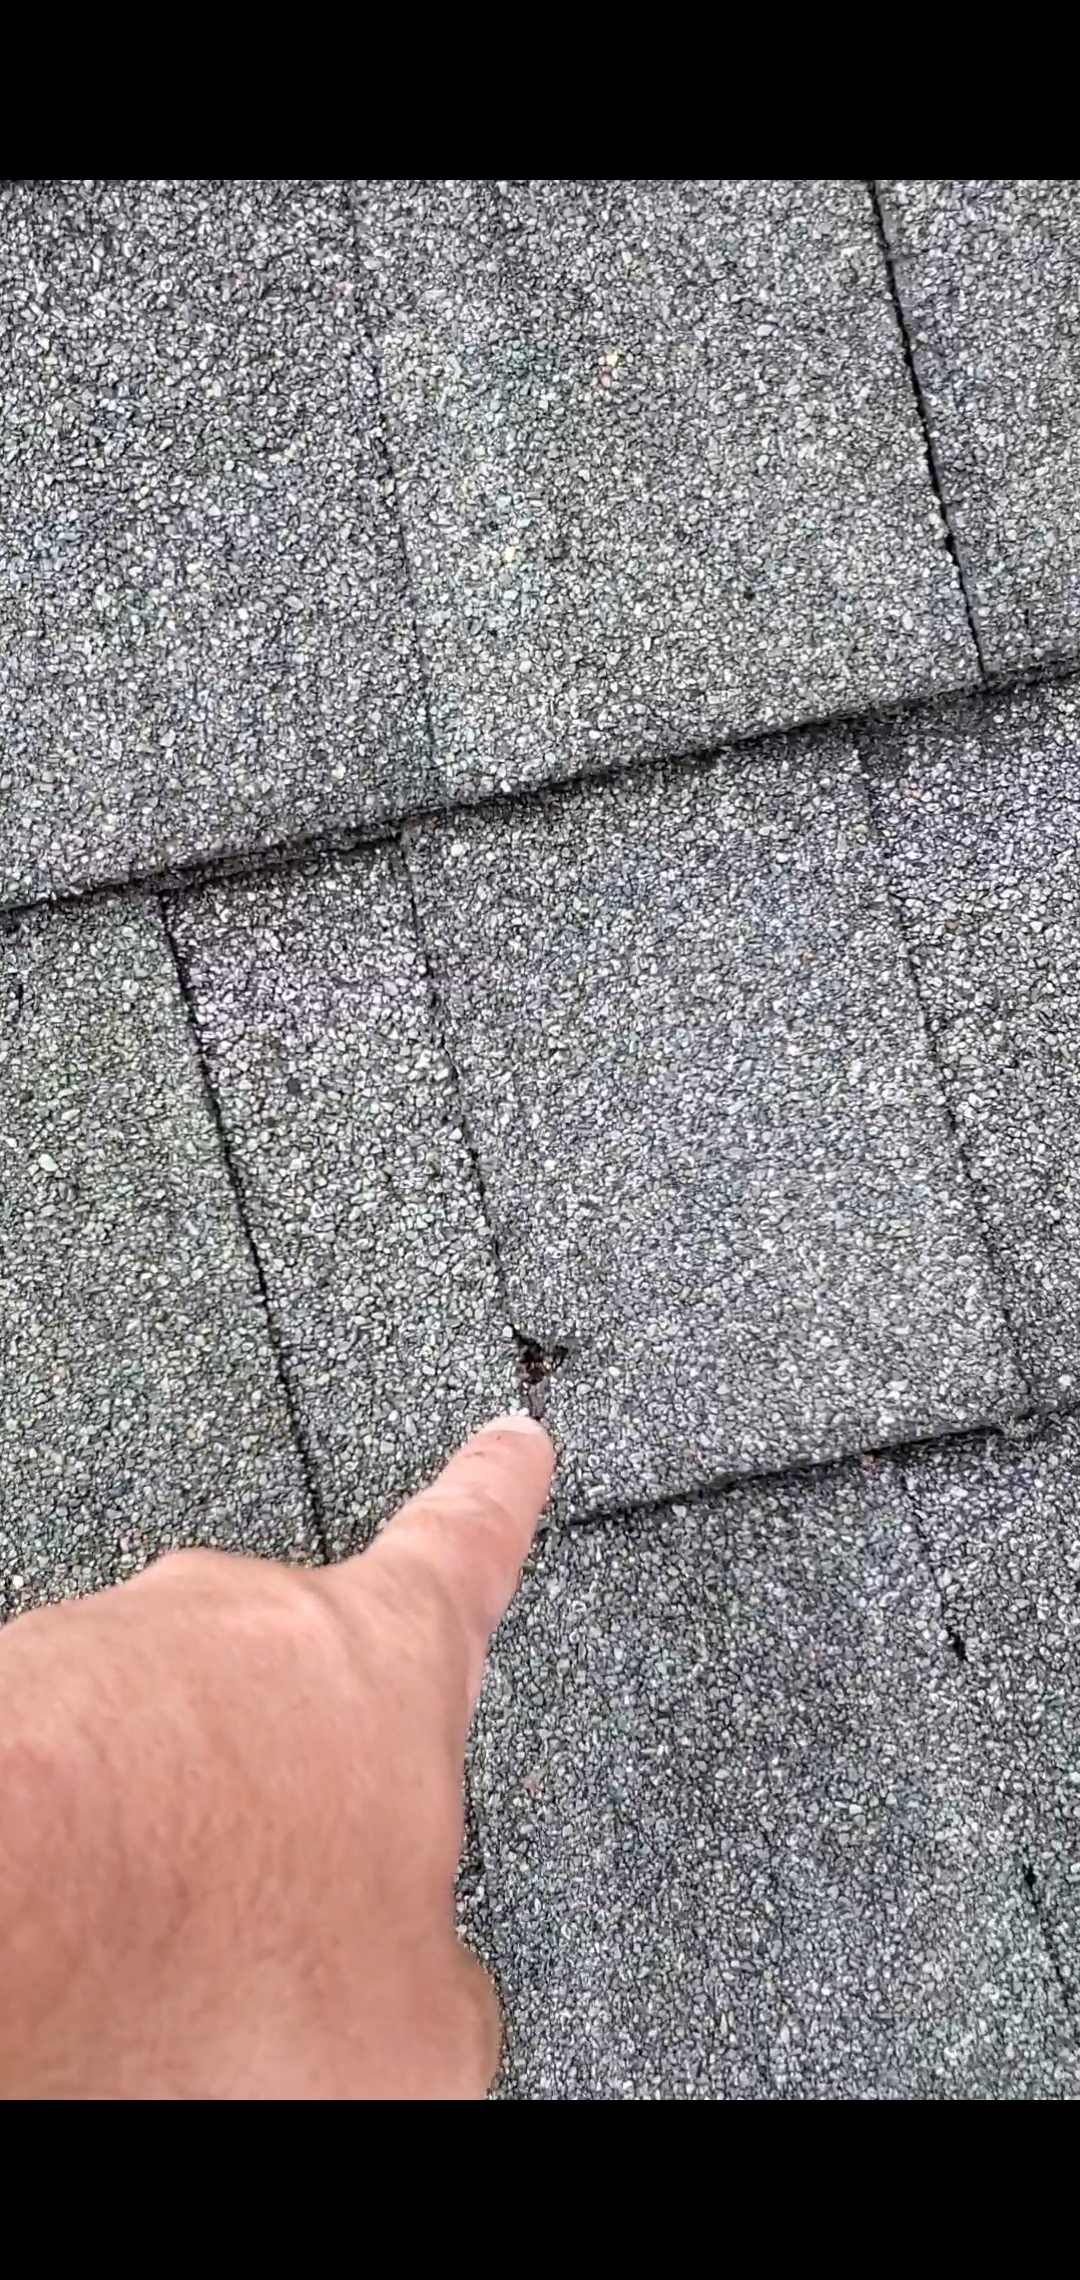 This is a picture of a broken shingle